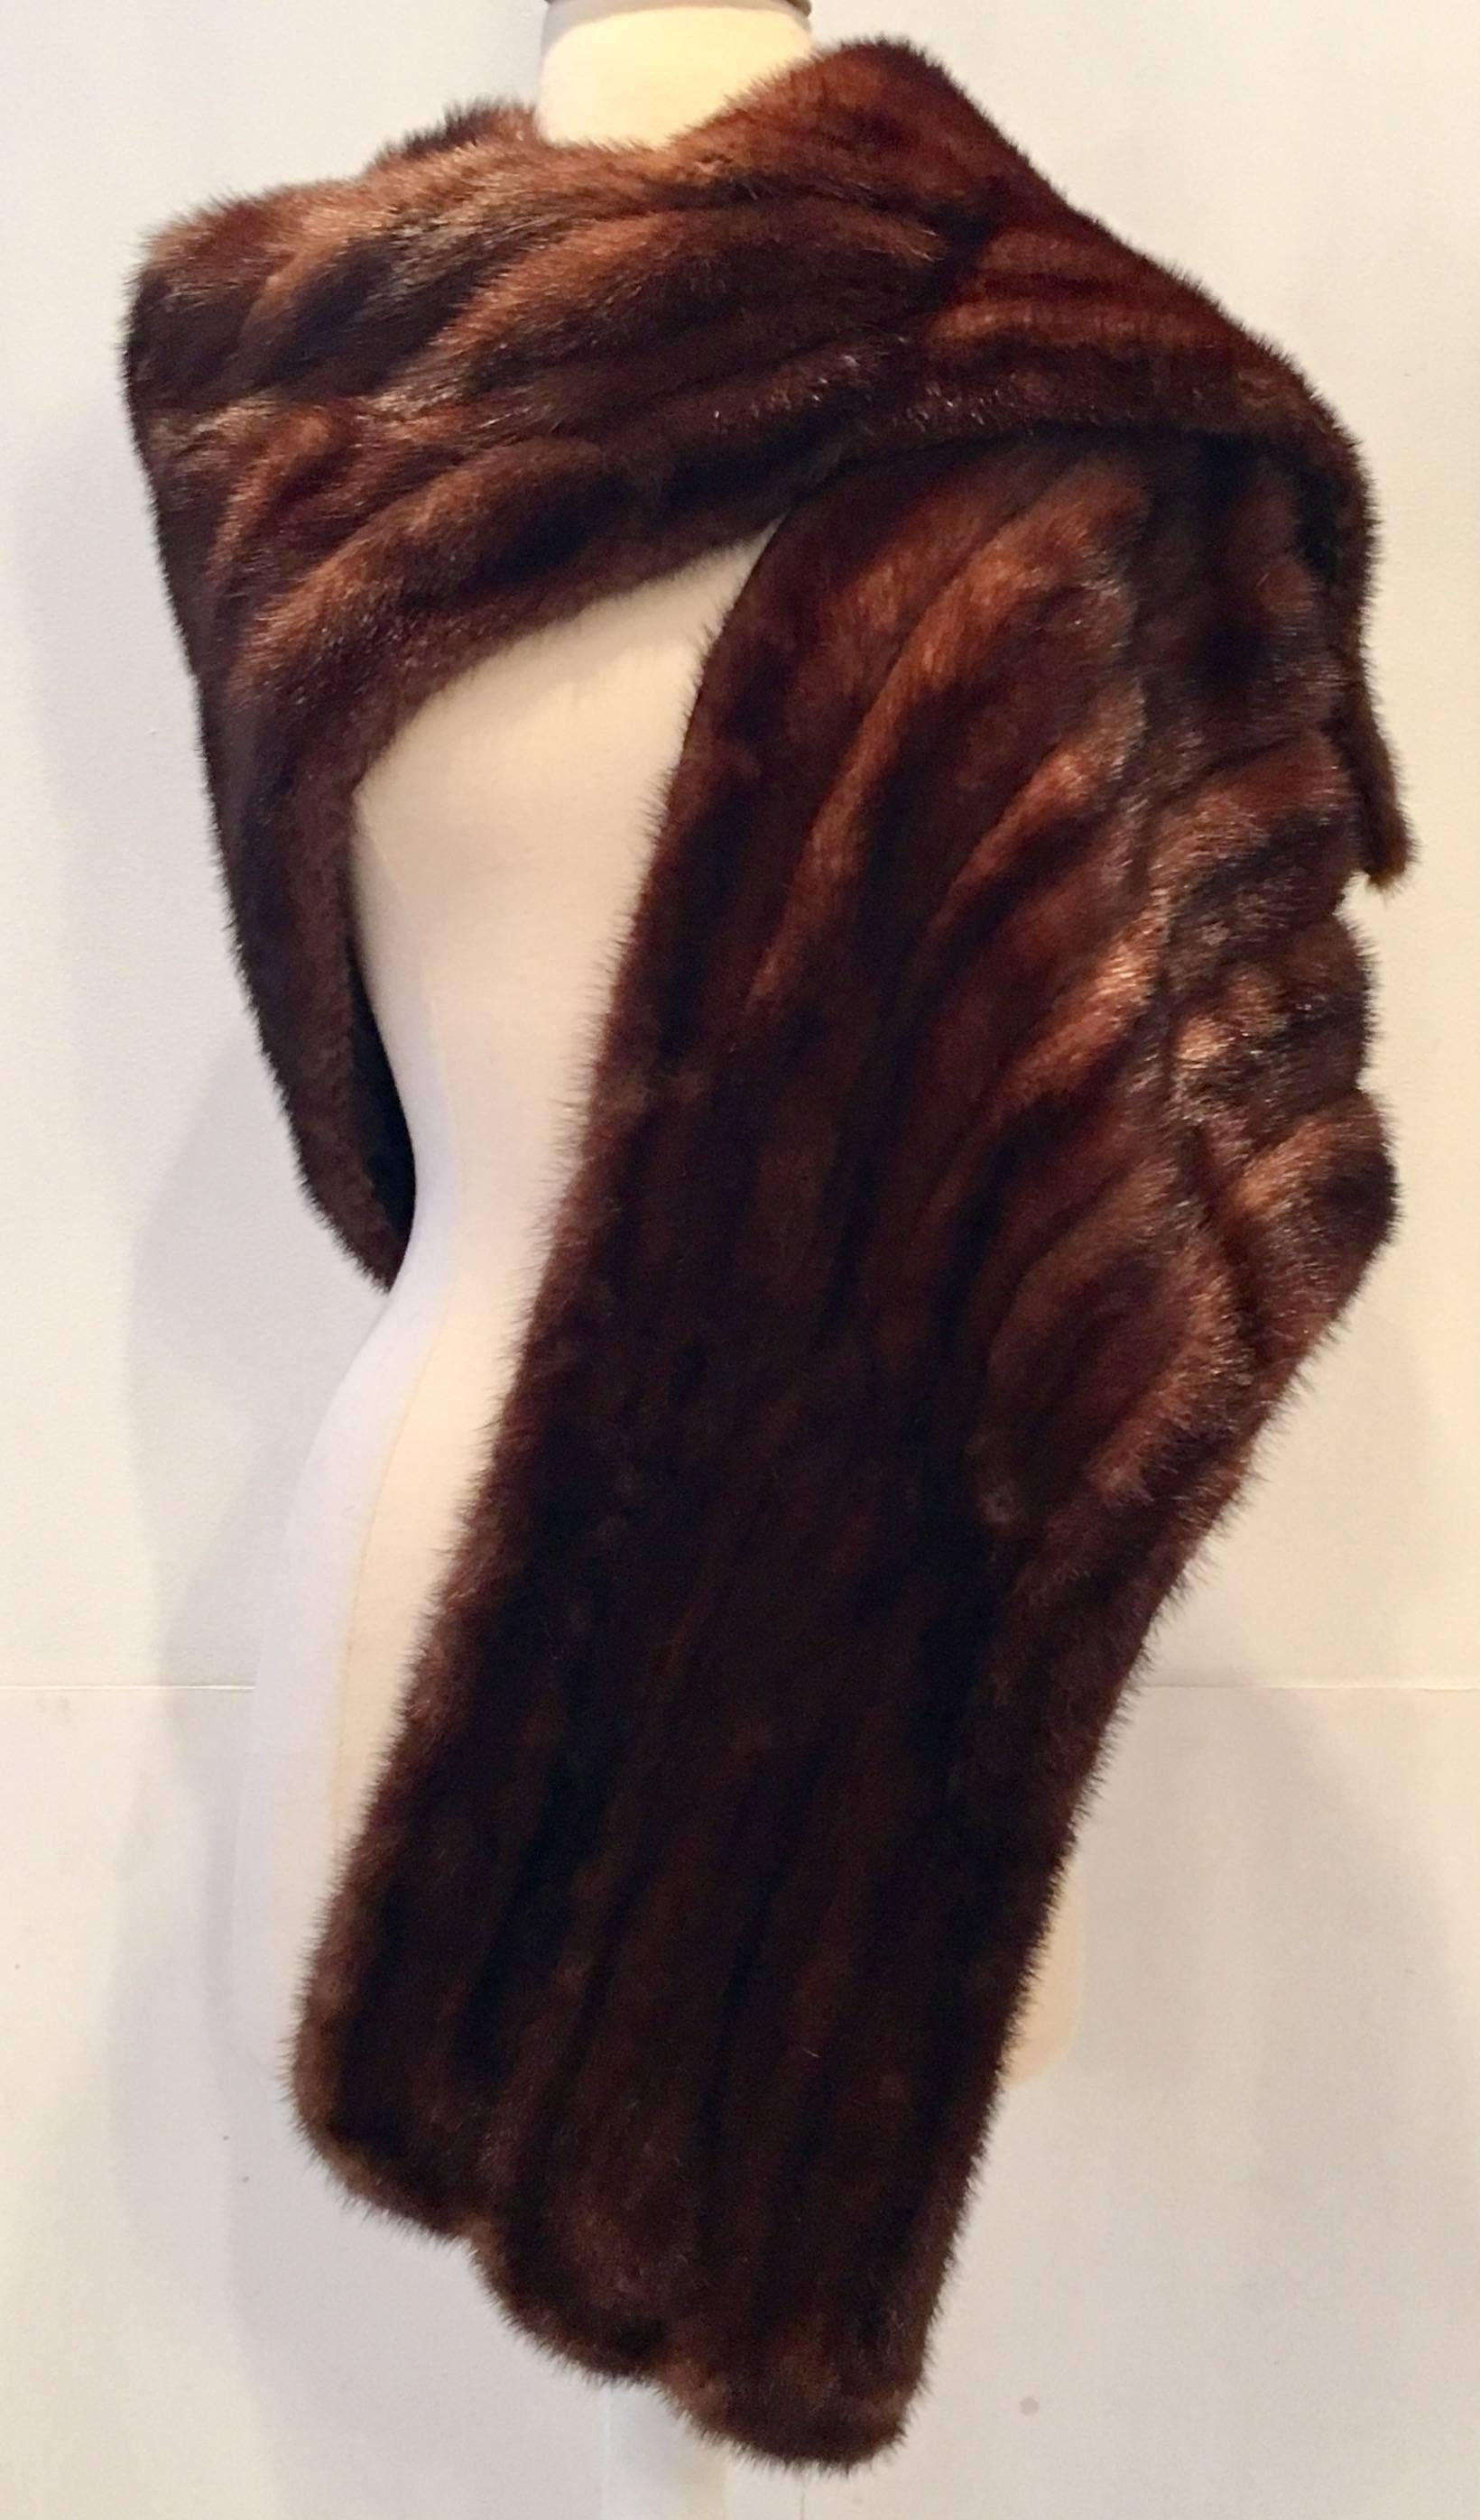 322d9e88d4 1950 S Mink Stole By Marshall Field and Company at 1stdibs